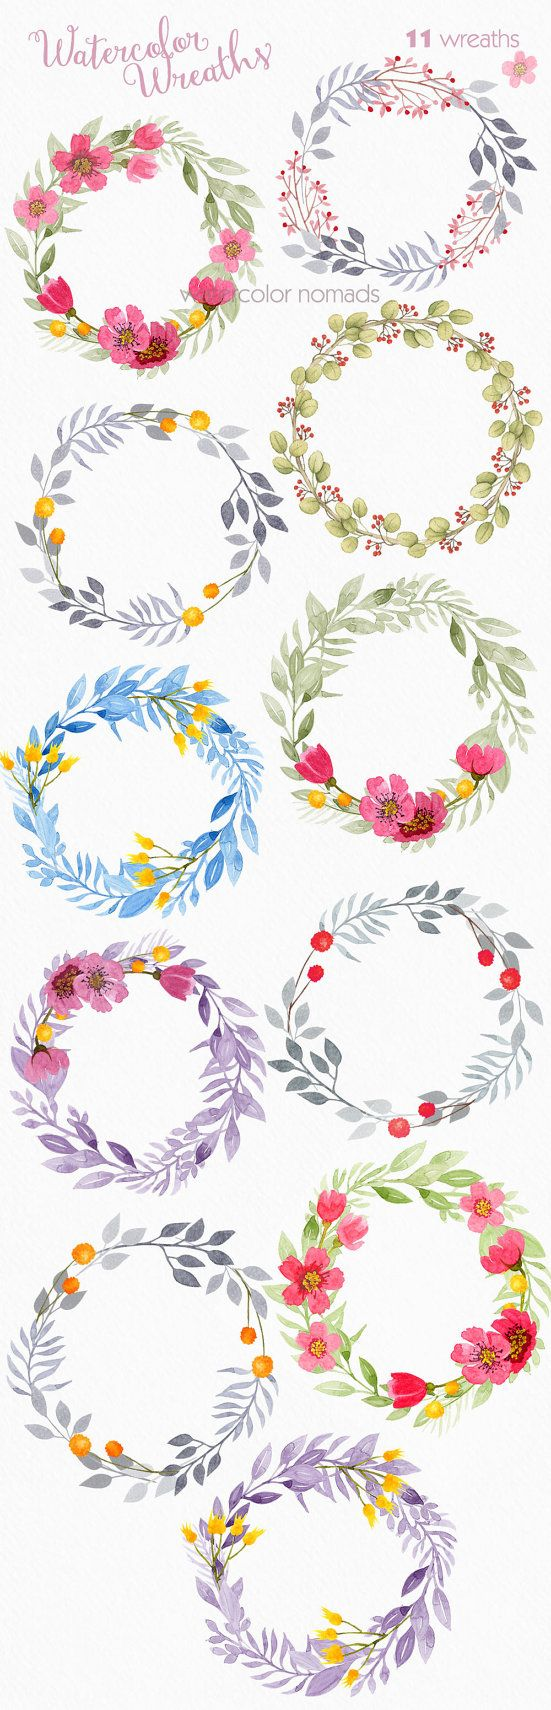 hight resolution of floral wreath clipart watercolor clipart by watercolornomads